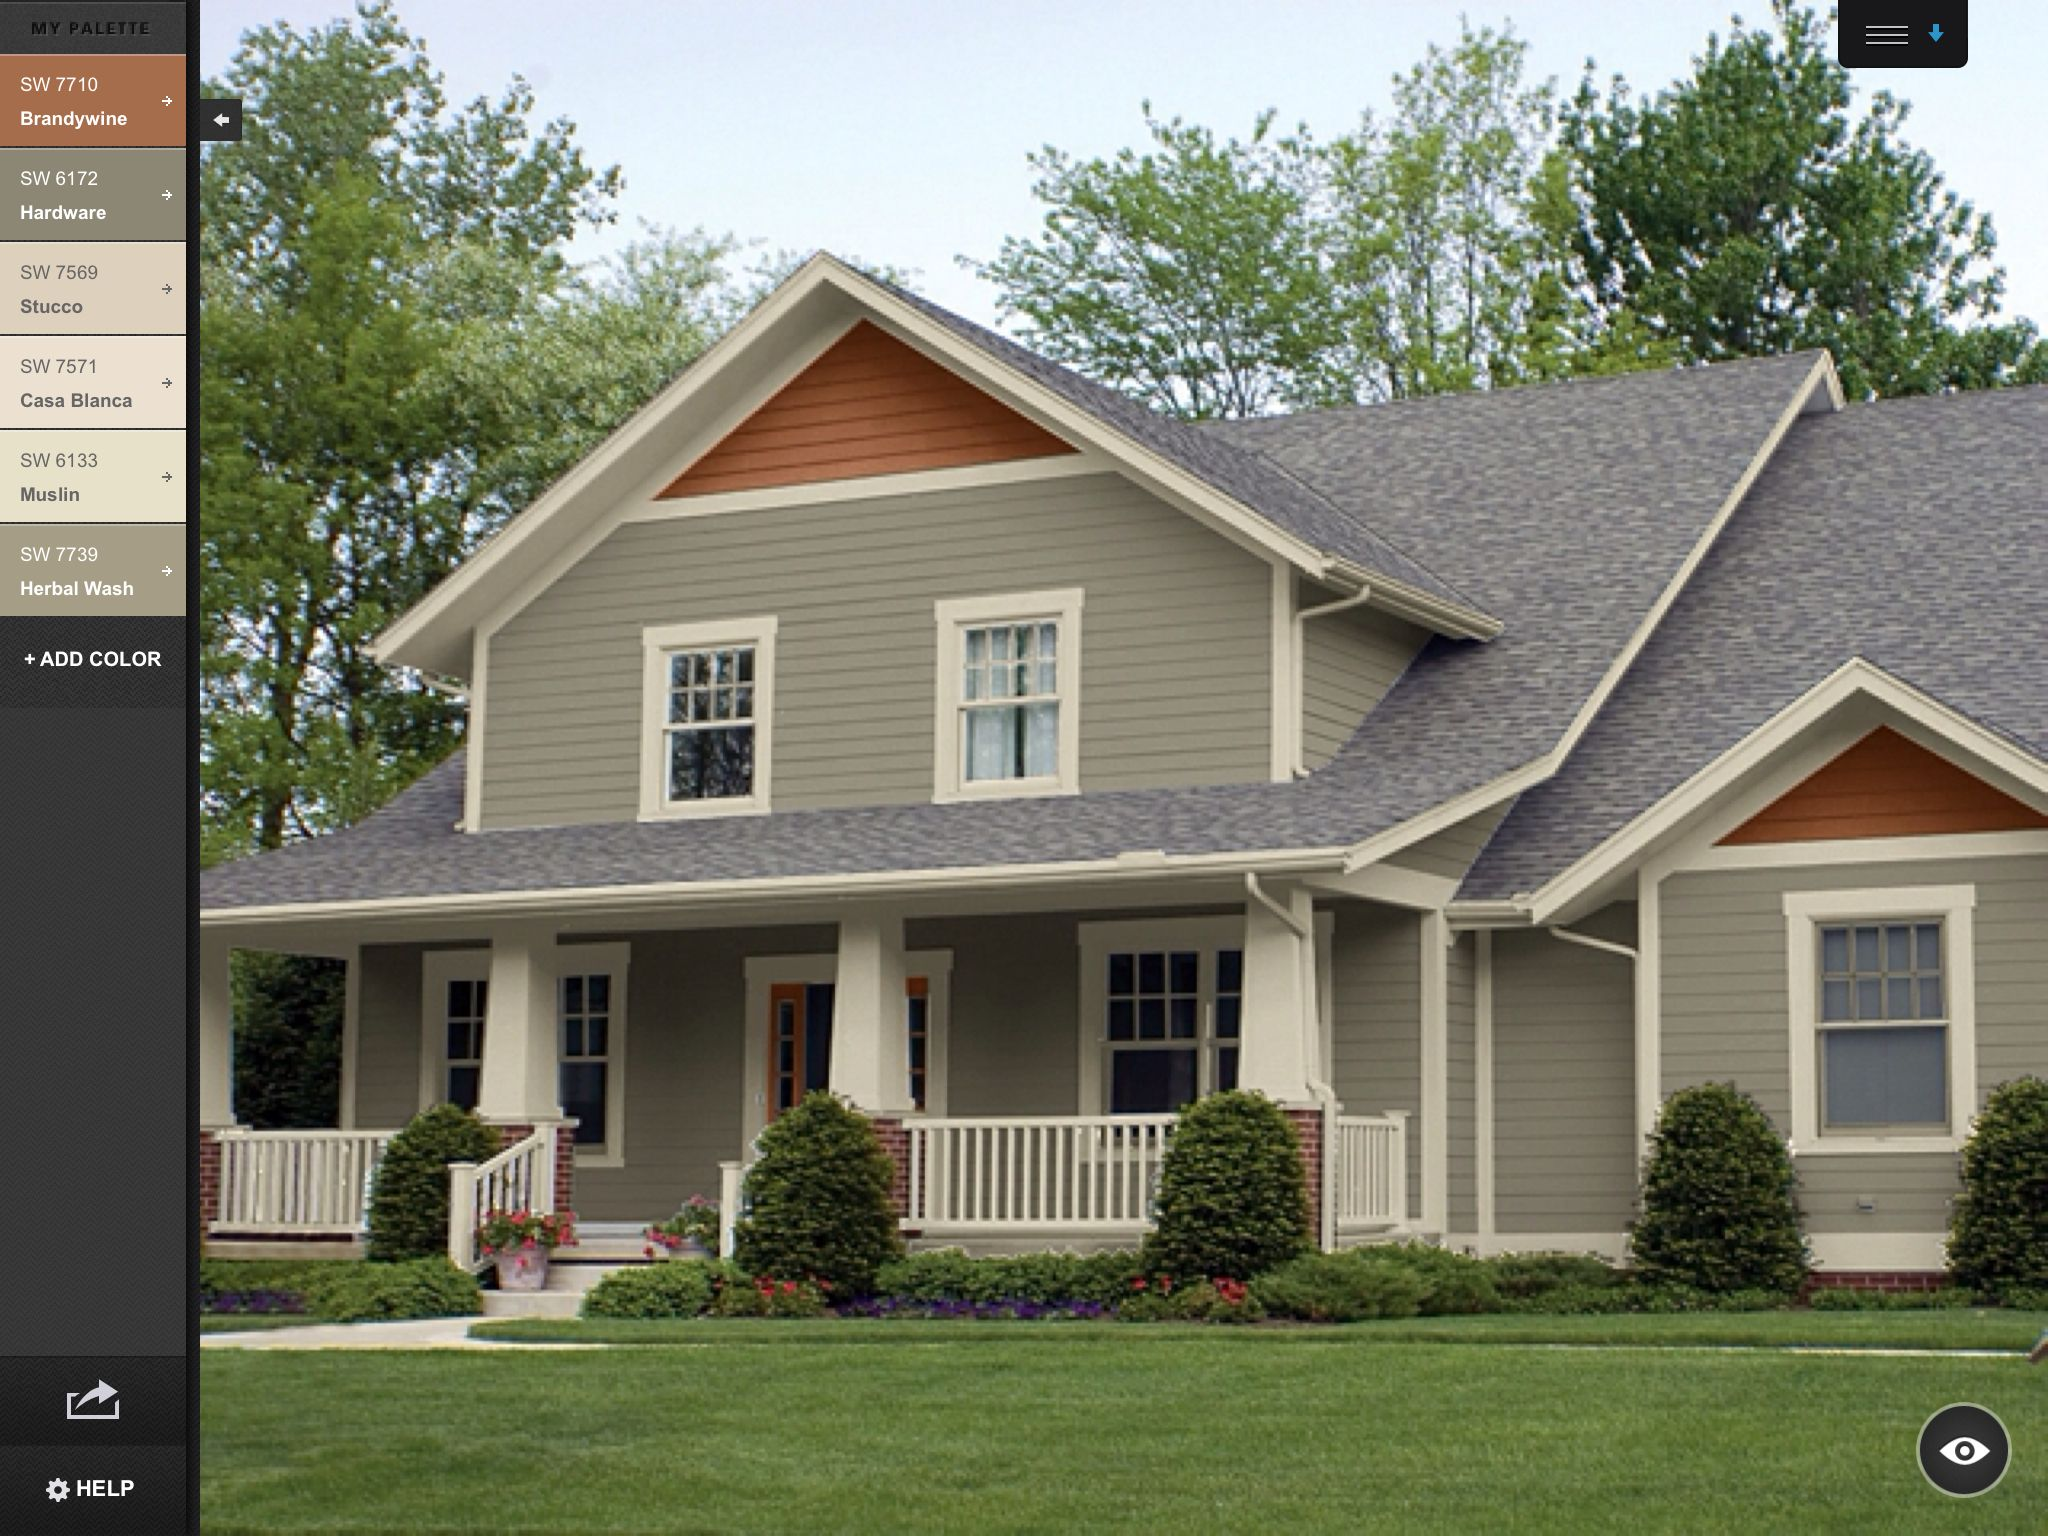 Hardware Cream Brandywine Exterior Pinterest Hardware House Paint Colors And House Colors